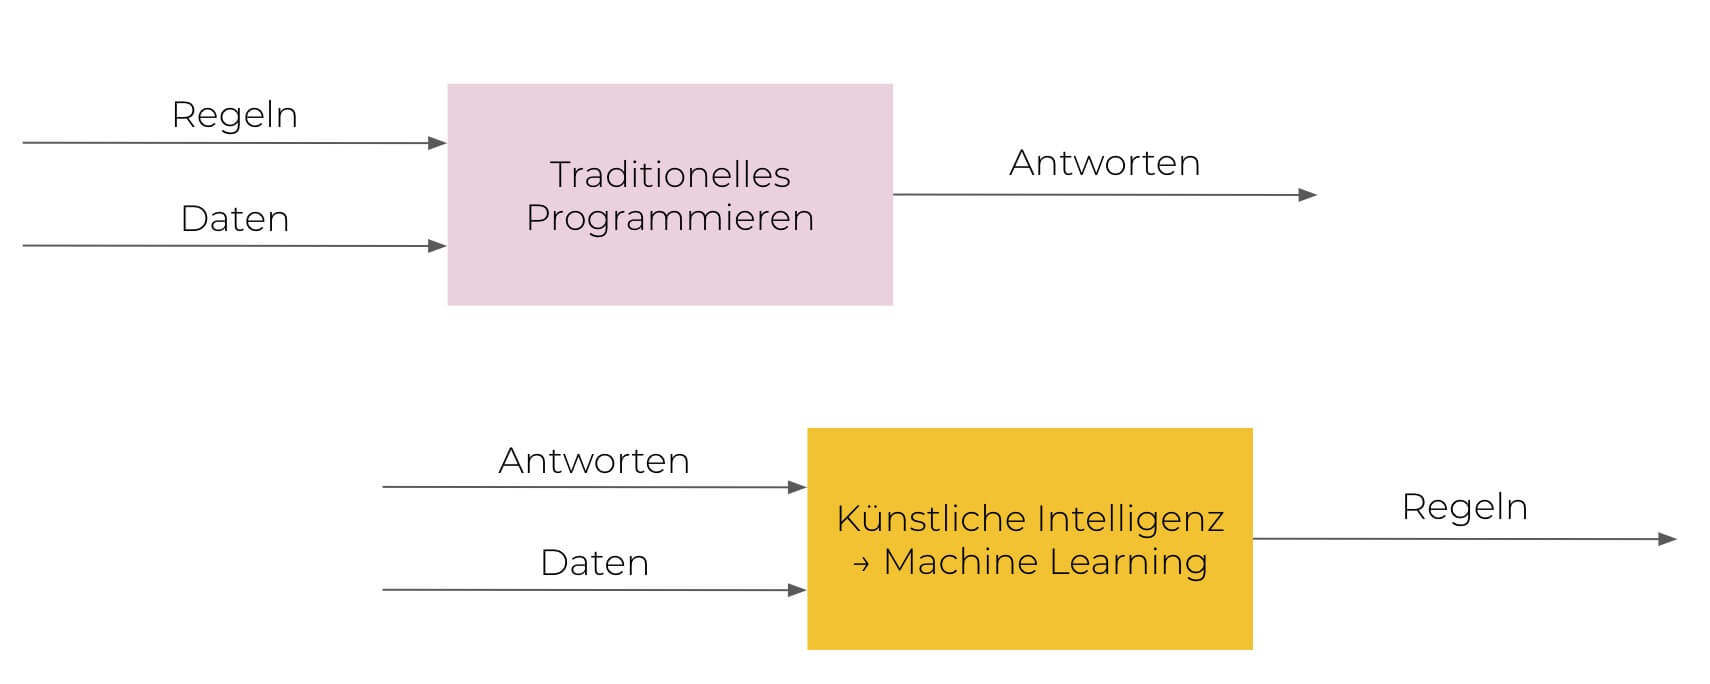 Traditionelles Programmieren vs. Machine Learning